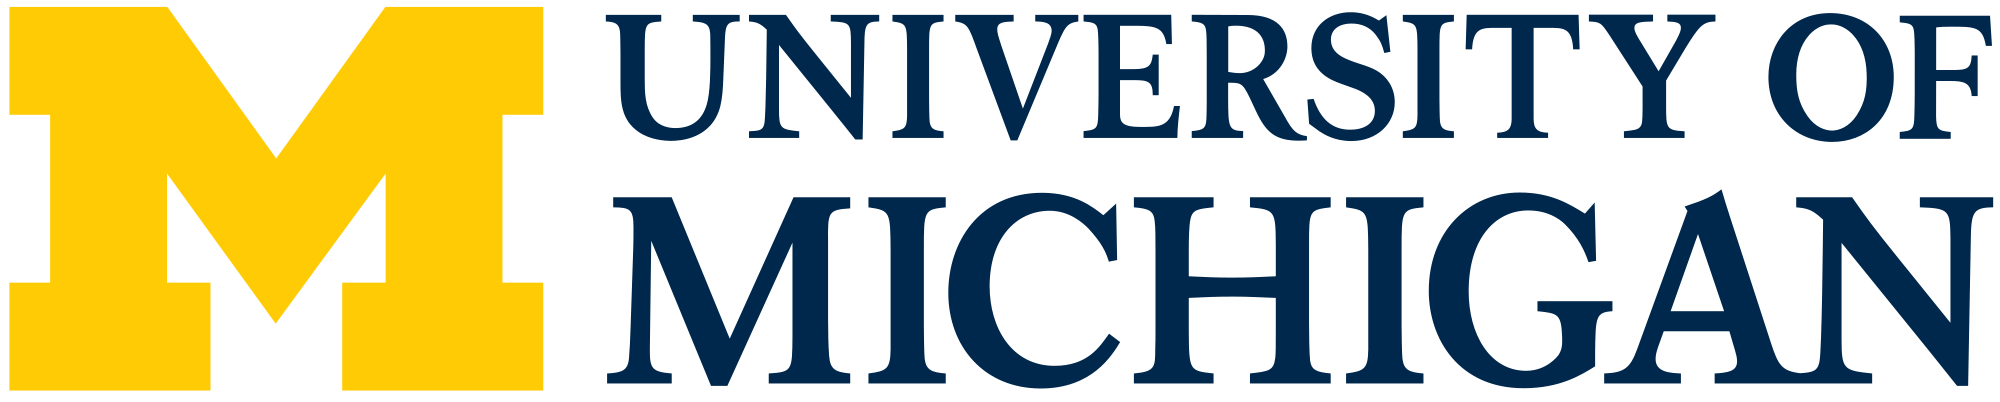 2000px-University_of_Michigan_logo.svg